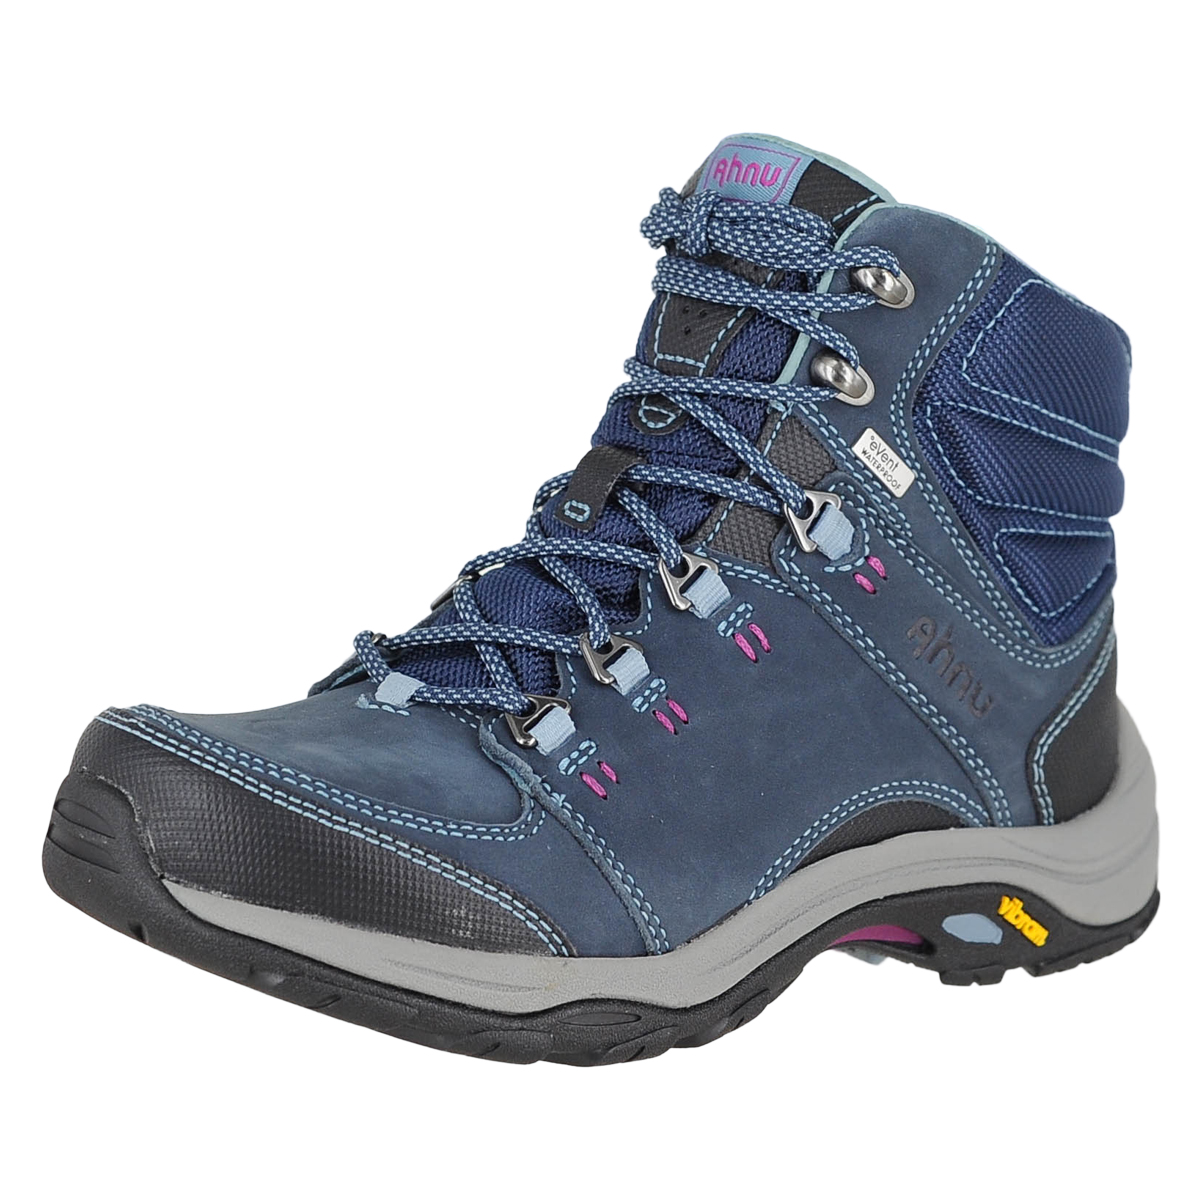 74aaeace6 Details about Ahnu By Teva Montara Iii Boot Event Blue Spell Womens Hiking  Boots Size 6M